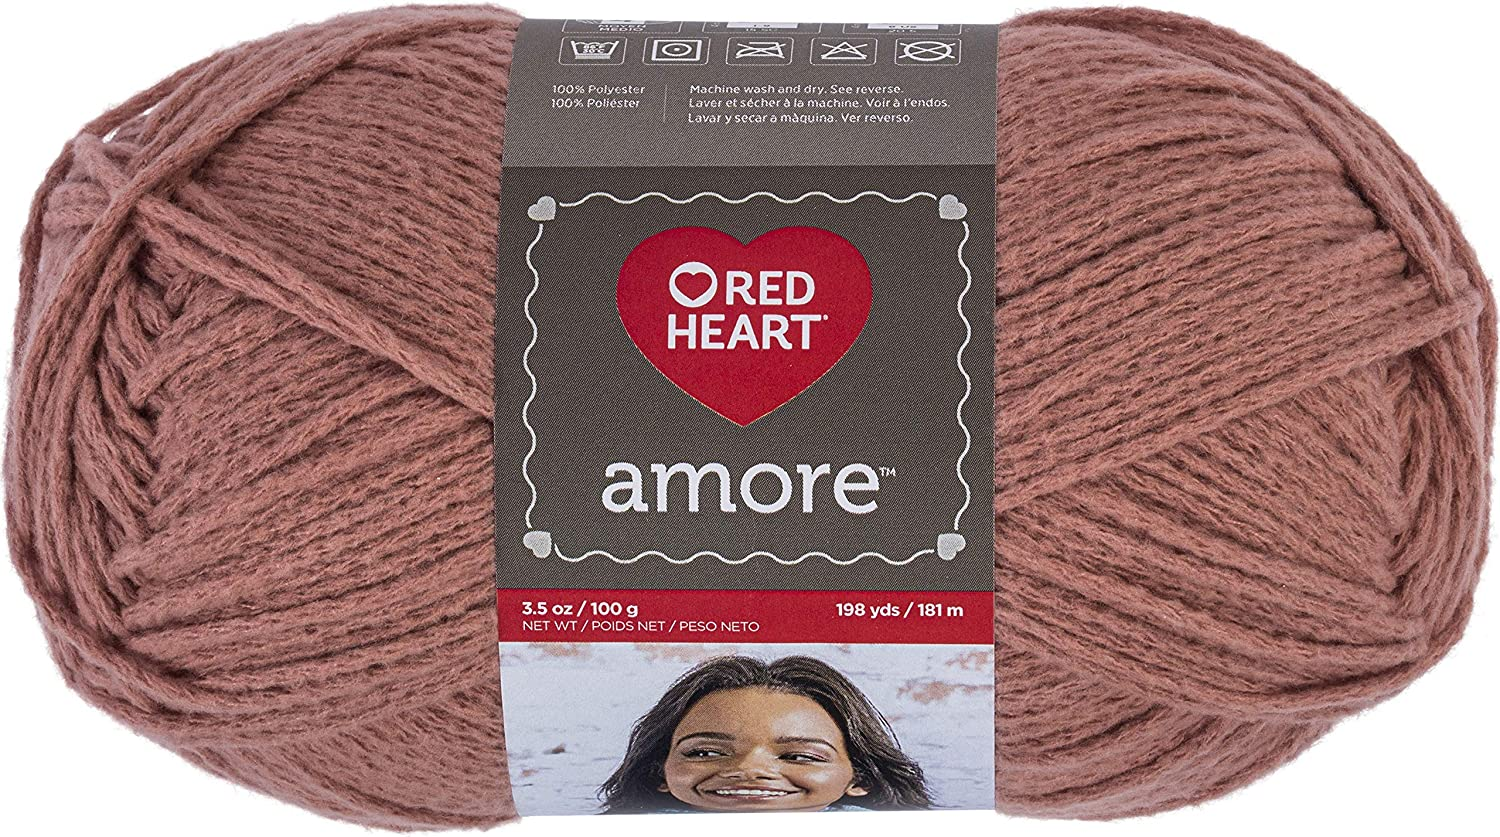 Red Heart 100/% Acrylic Soft Yarn for Home Décor Cozy Hats Scarves Wraps